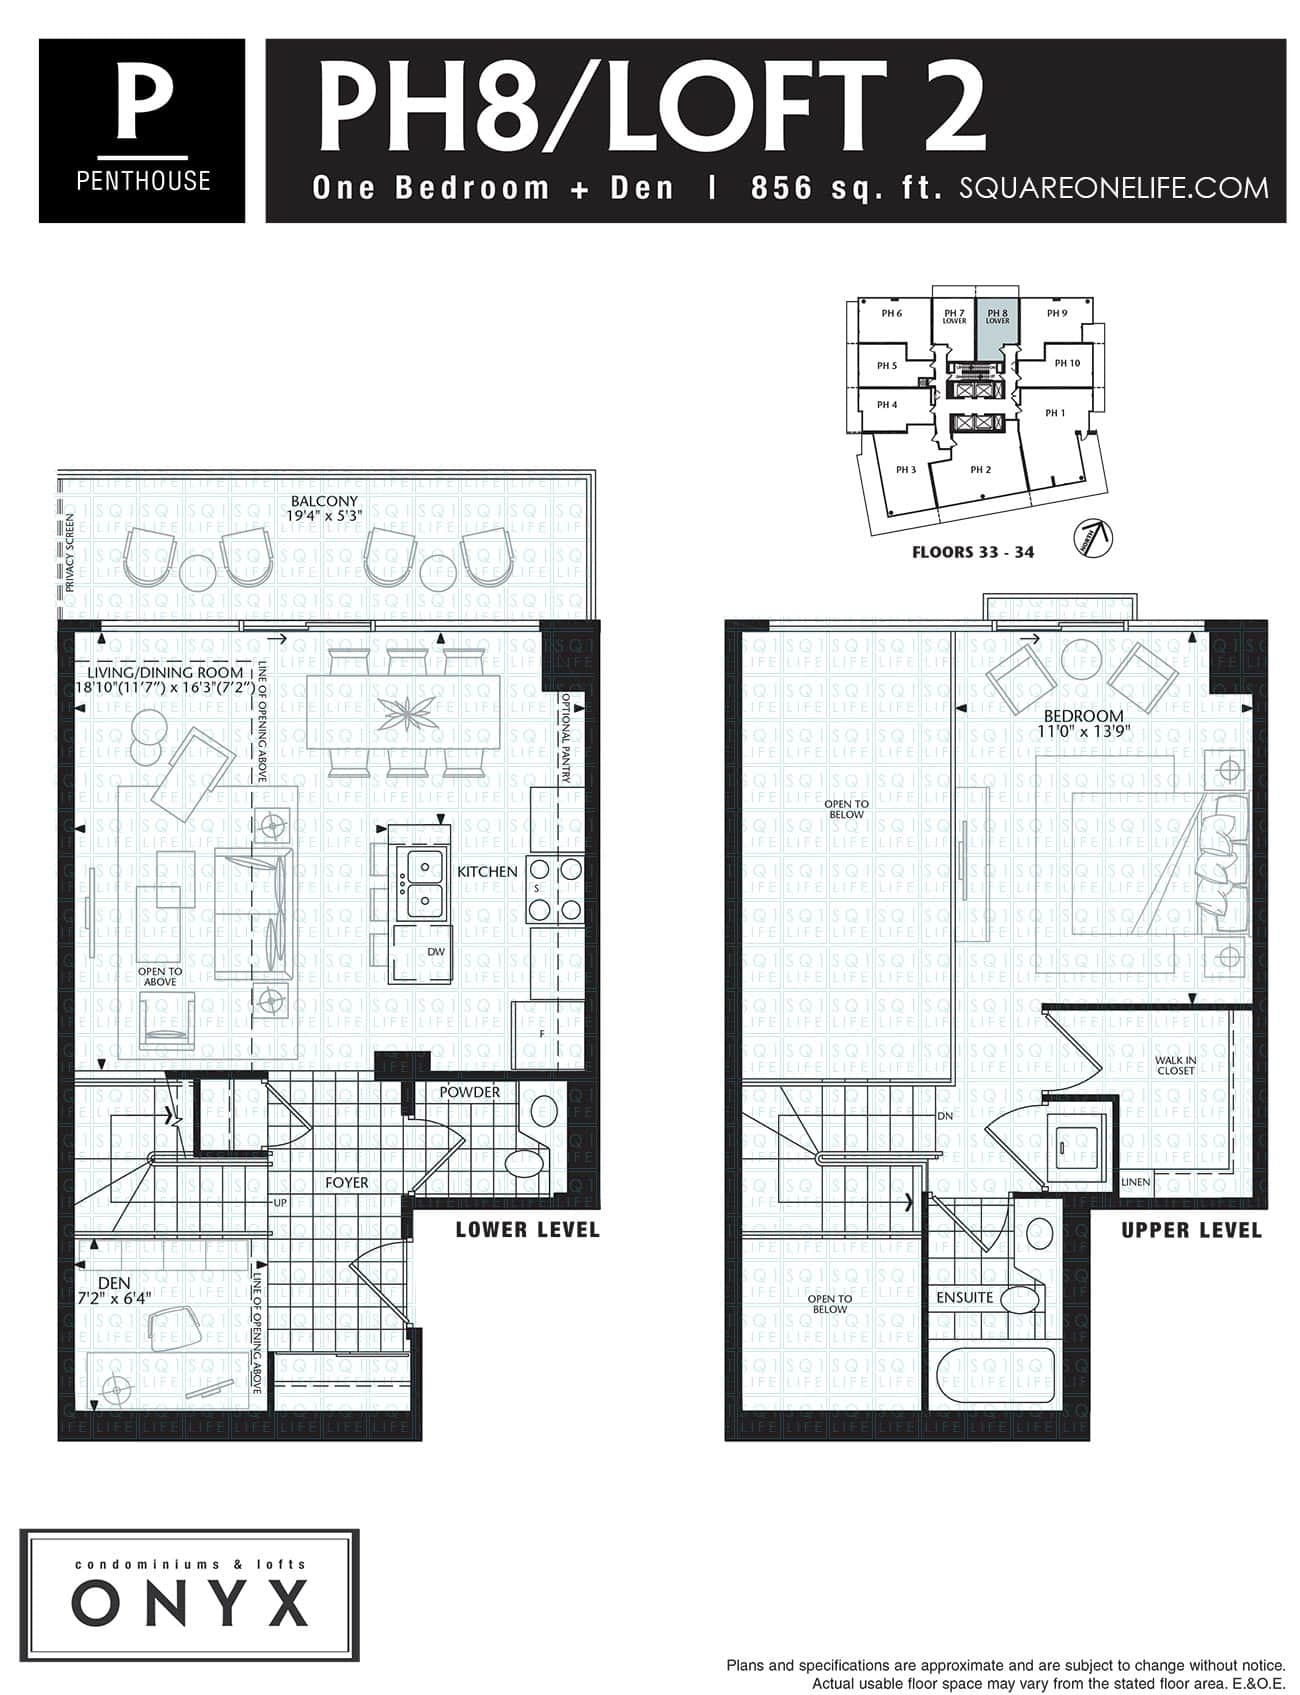 223-Webb-Dr-Onyx-Condo-Floorplan-PH8-1-Bed-1-Den onyx condo Onyx Condo 223 Webb Dr Onyx Condo Floorplan PH8 1 Bed 1 Den